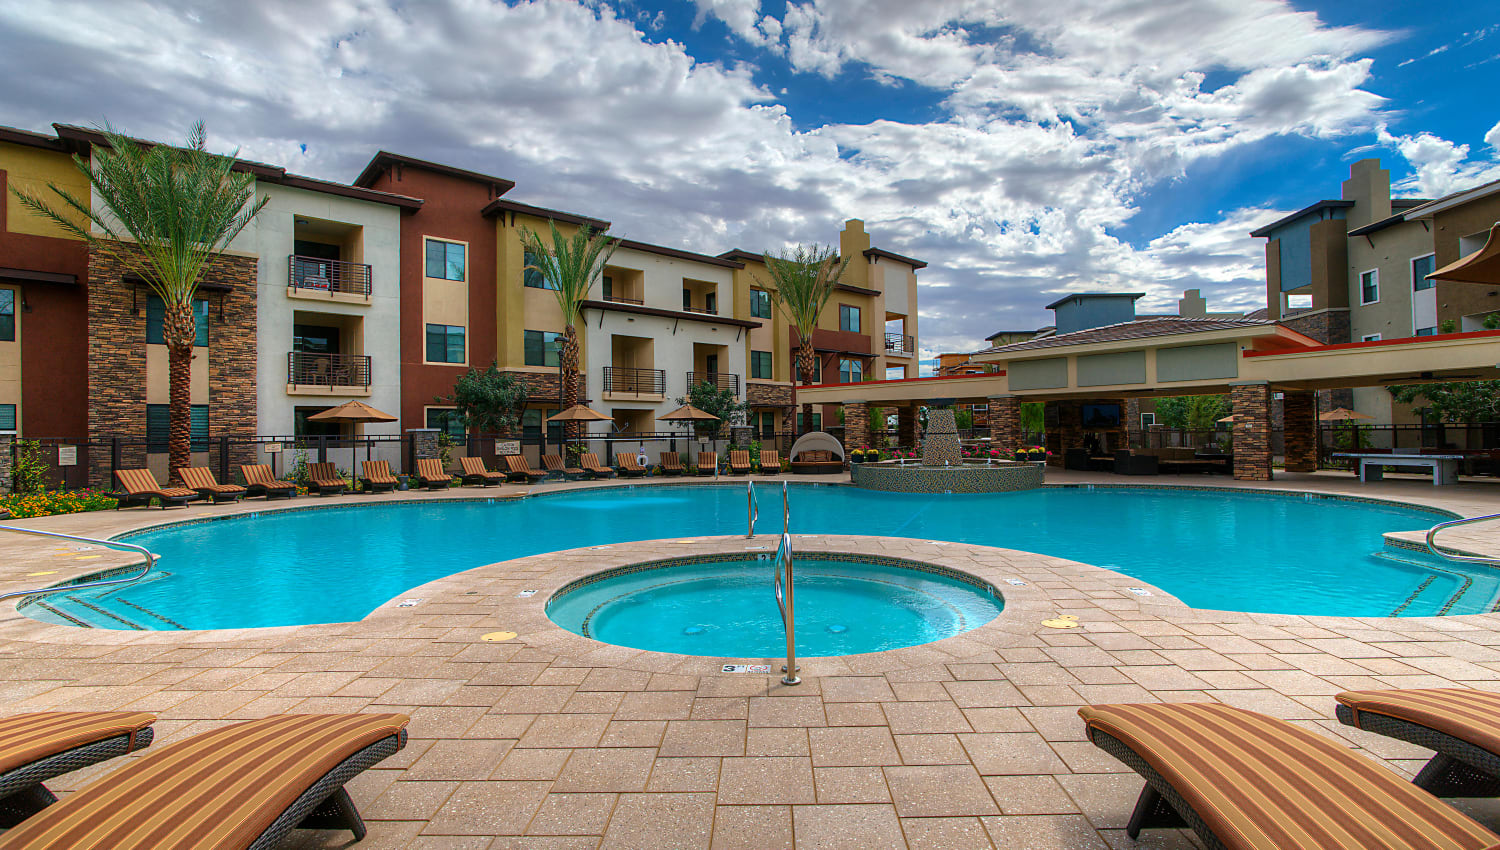 Spa and pool area at Vistara at SanTan Village in Gilbert, Arizona